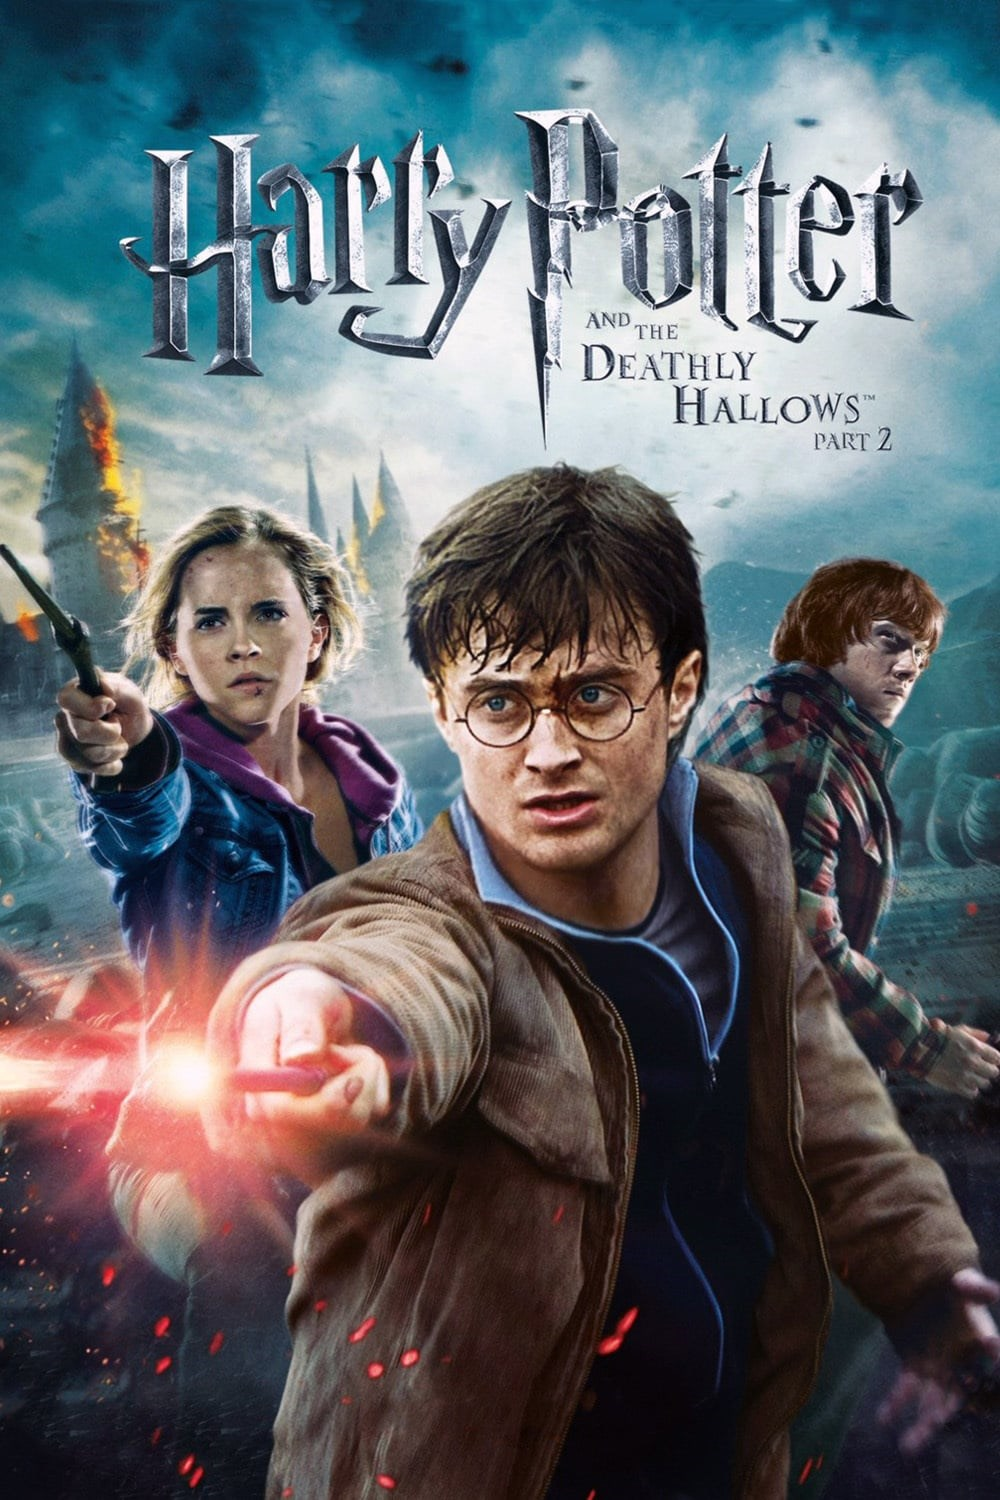 harry potter and the deathly hallows part 1 1080p subtitles